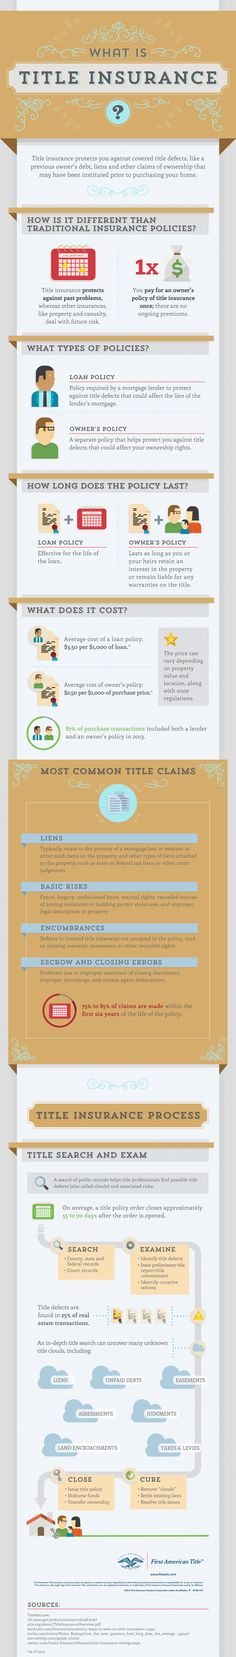 Title Insurance Information for Kentucky Mortgage Loans home mortgages. What is Title Insurance? Owners title insurance and Lender title insurance differences?